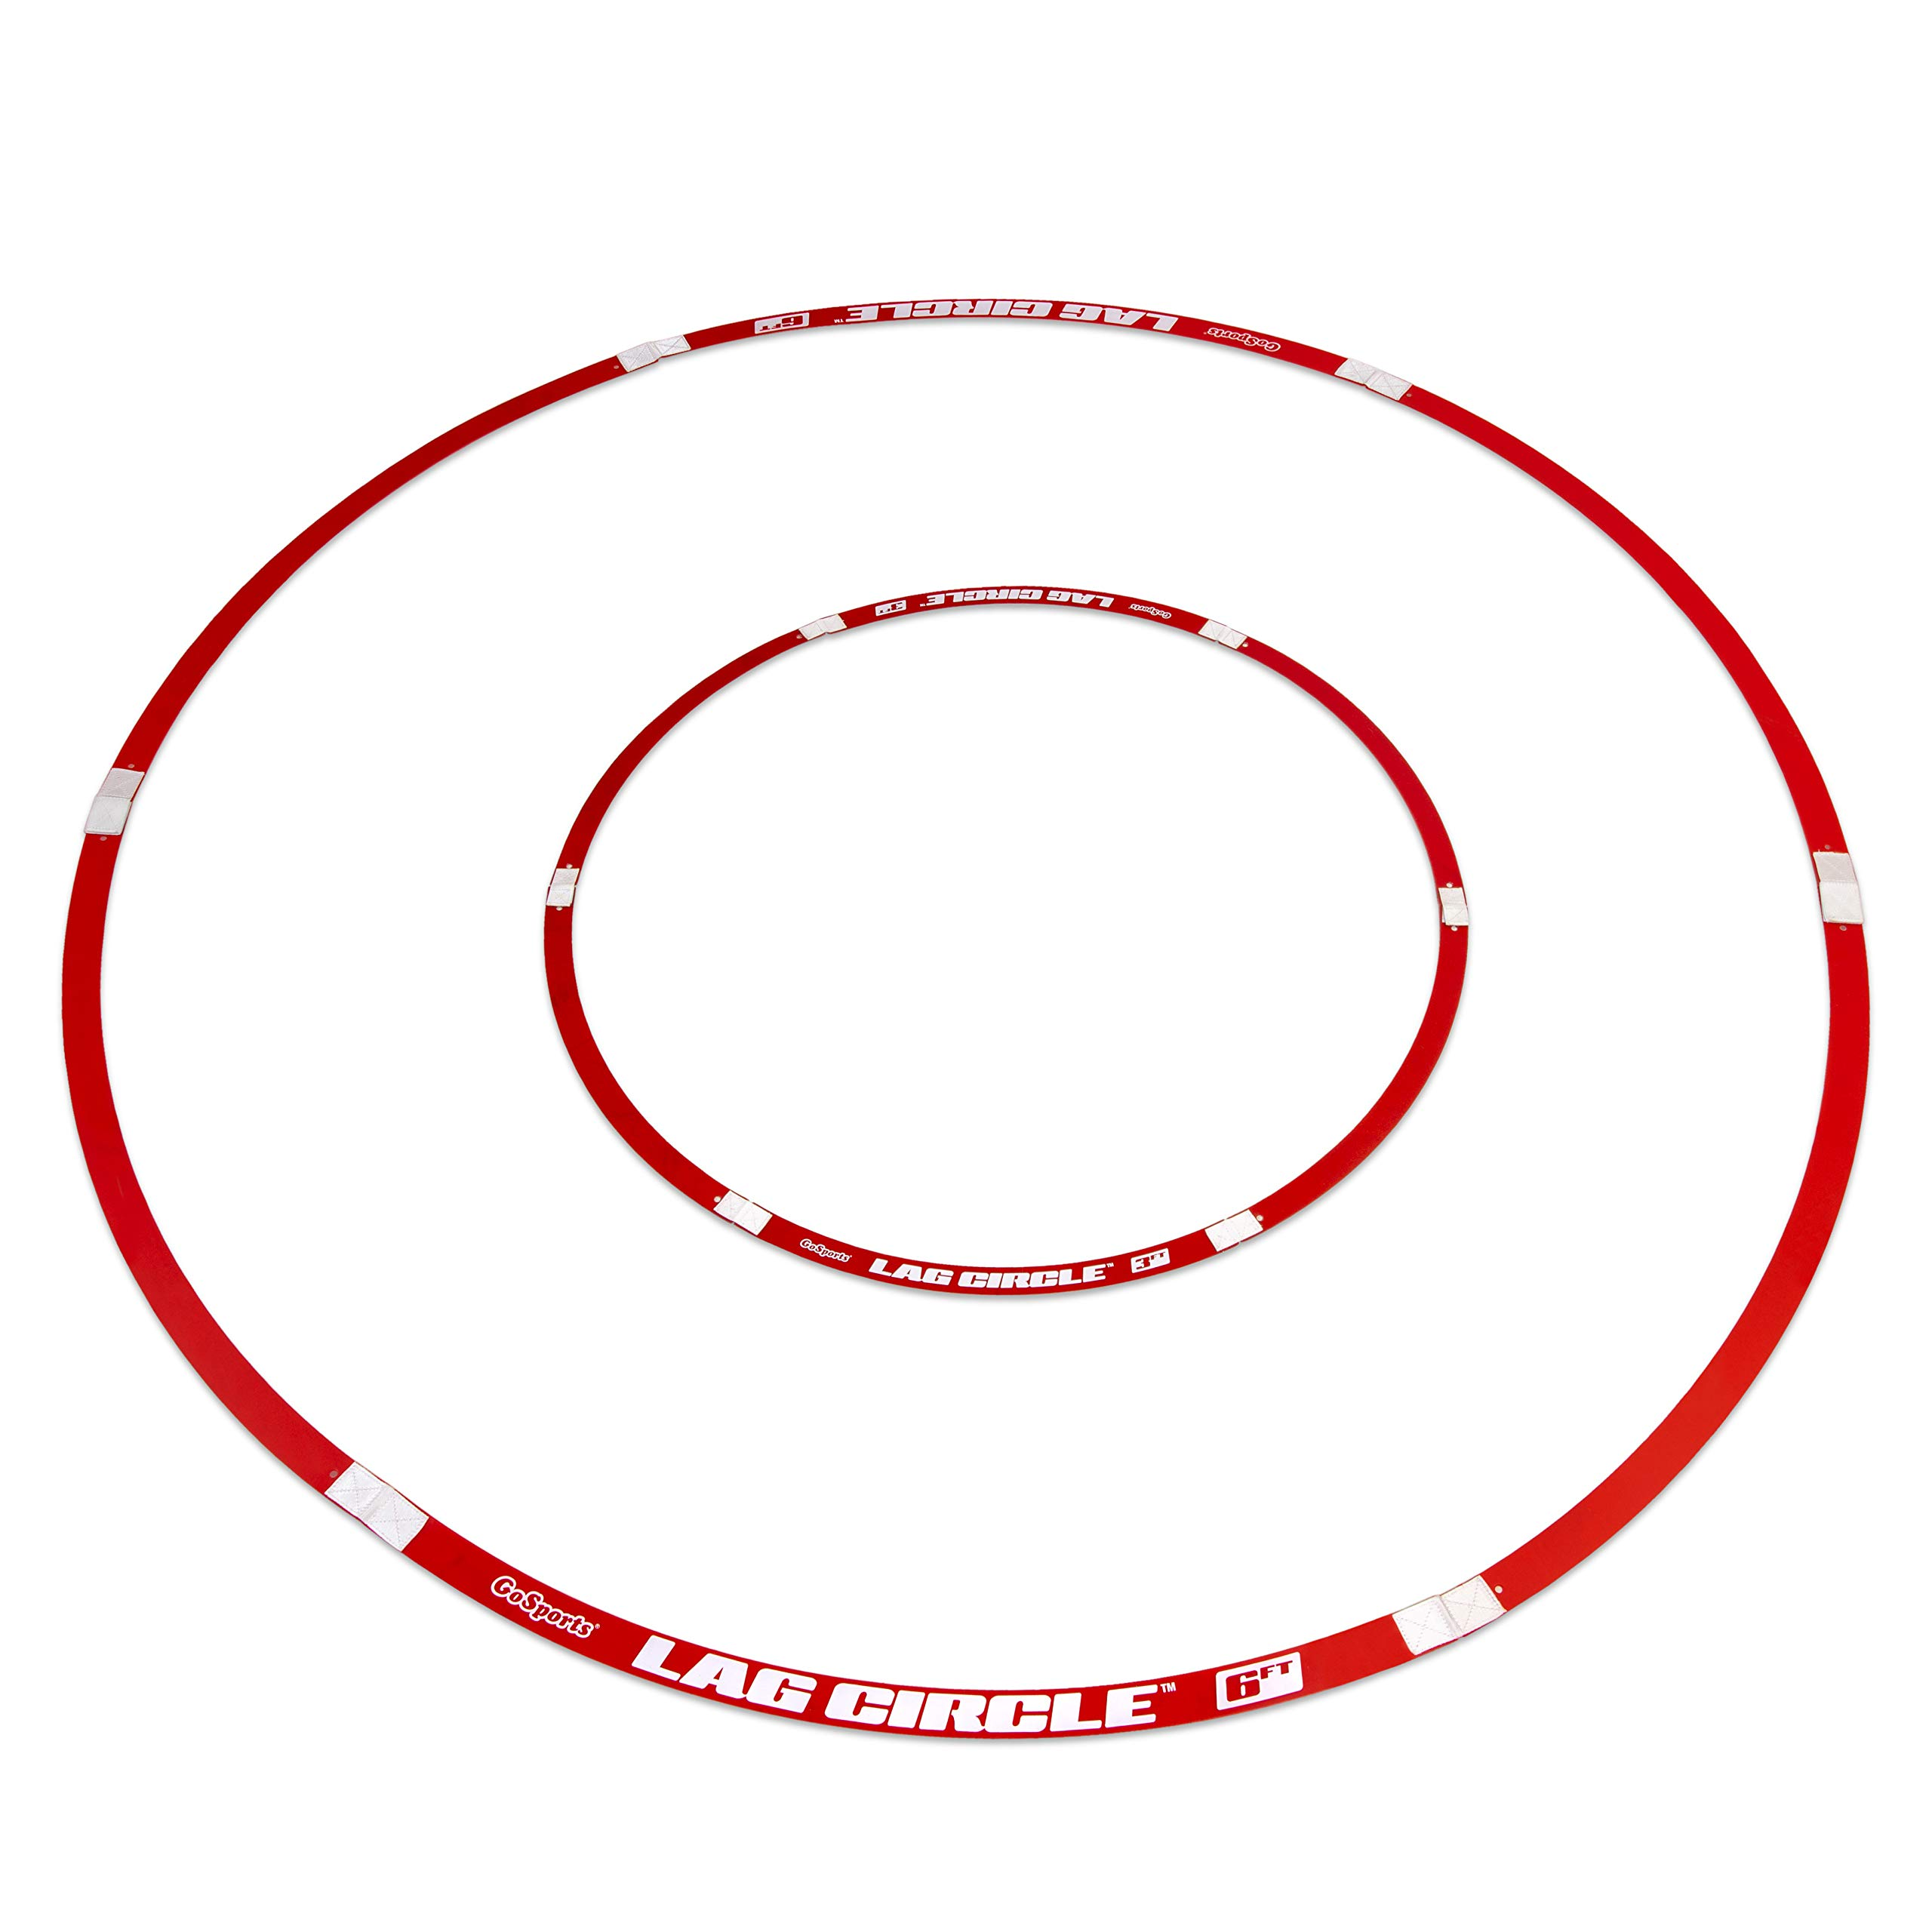 GoSports LAG Circle Putting and Chipping Training Tool - Includes 6' and 3' Circles by GoSports